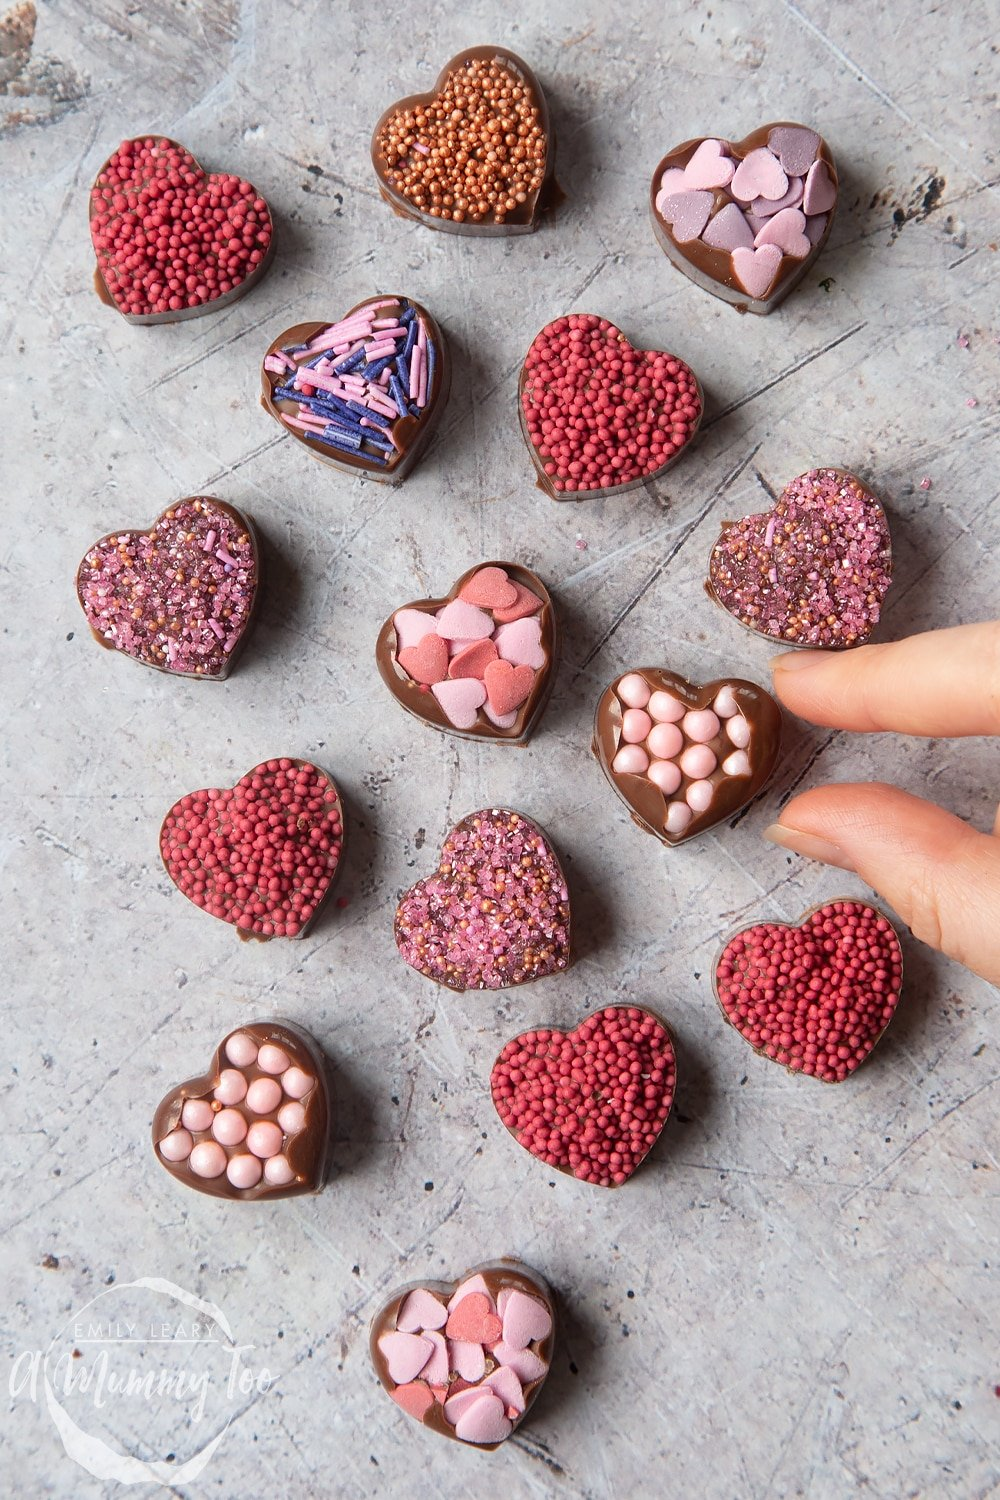 Overhead shot of a hand touching a chocolate heart with pink sprinkles with a mummy too logo in the lower-left corner